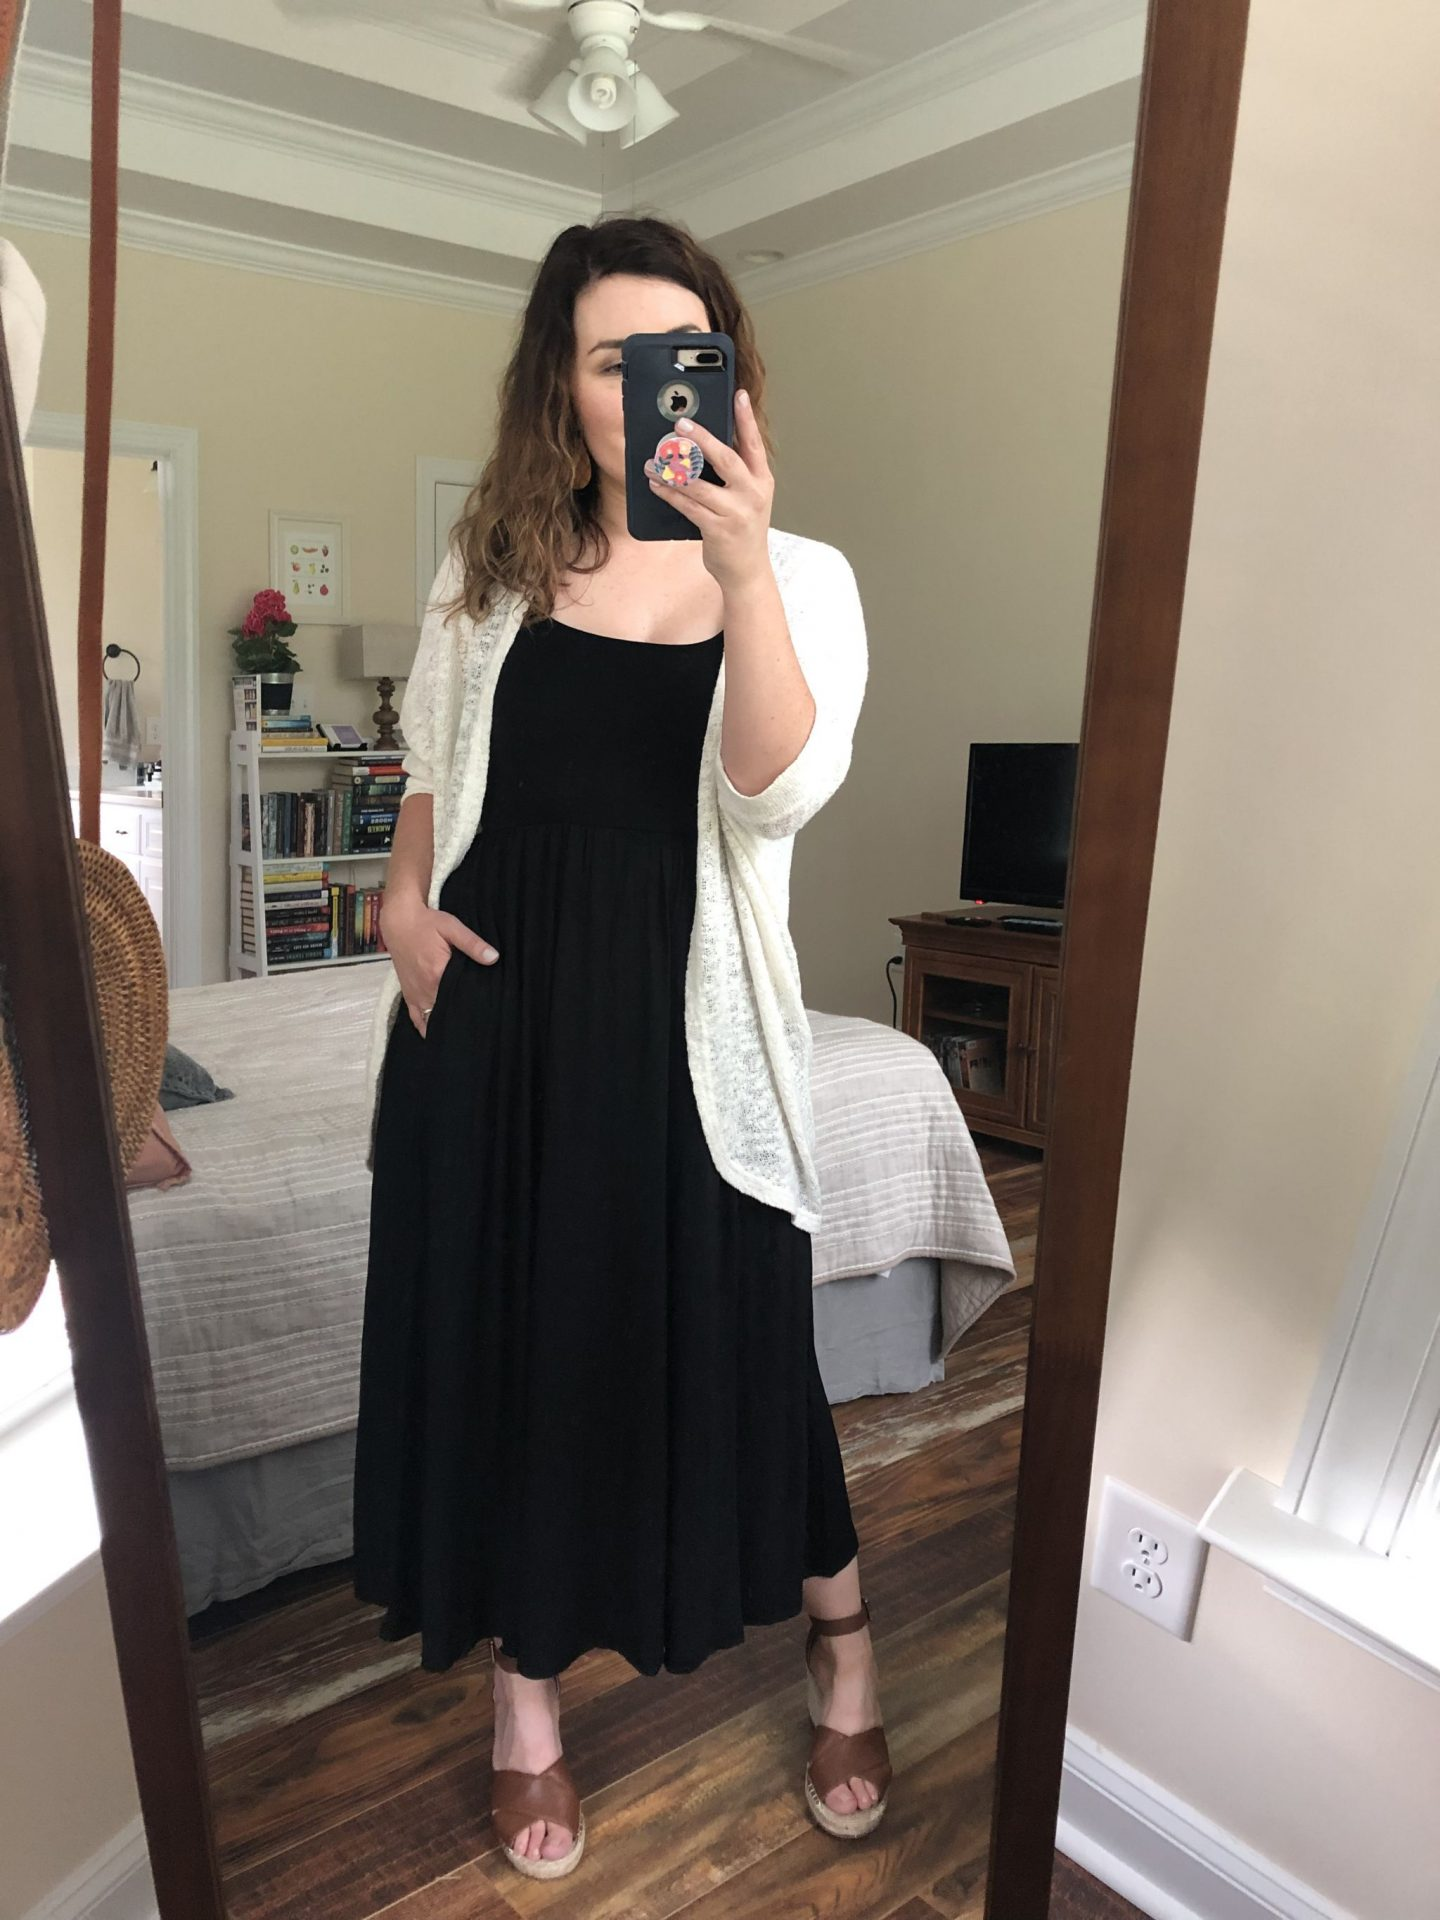 NC blogger Rebecca Lately shares how she styles one dress three ways. Check out this dress from Aritzia and how she styles it transitioning into fall!